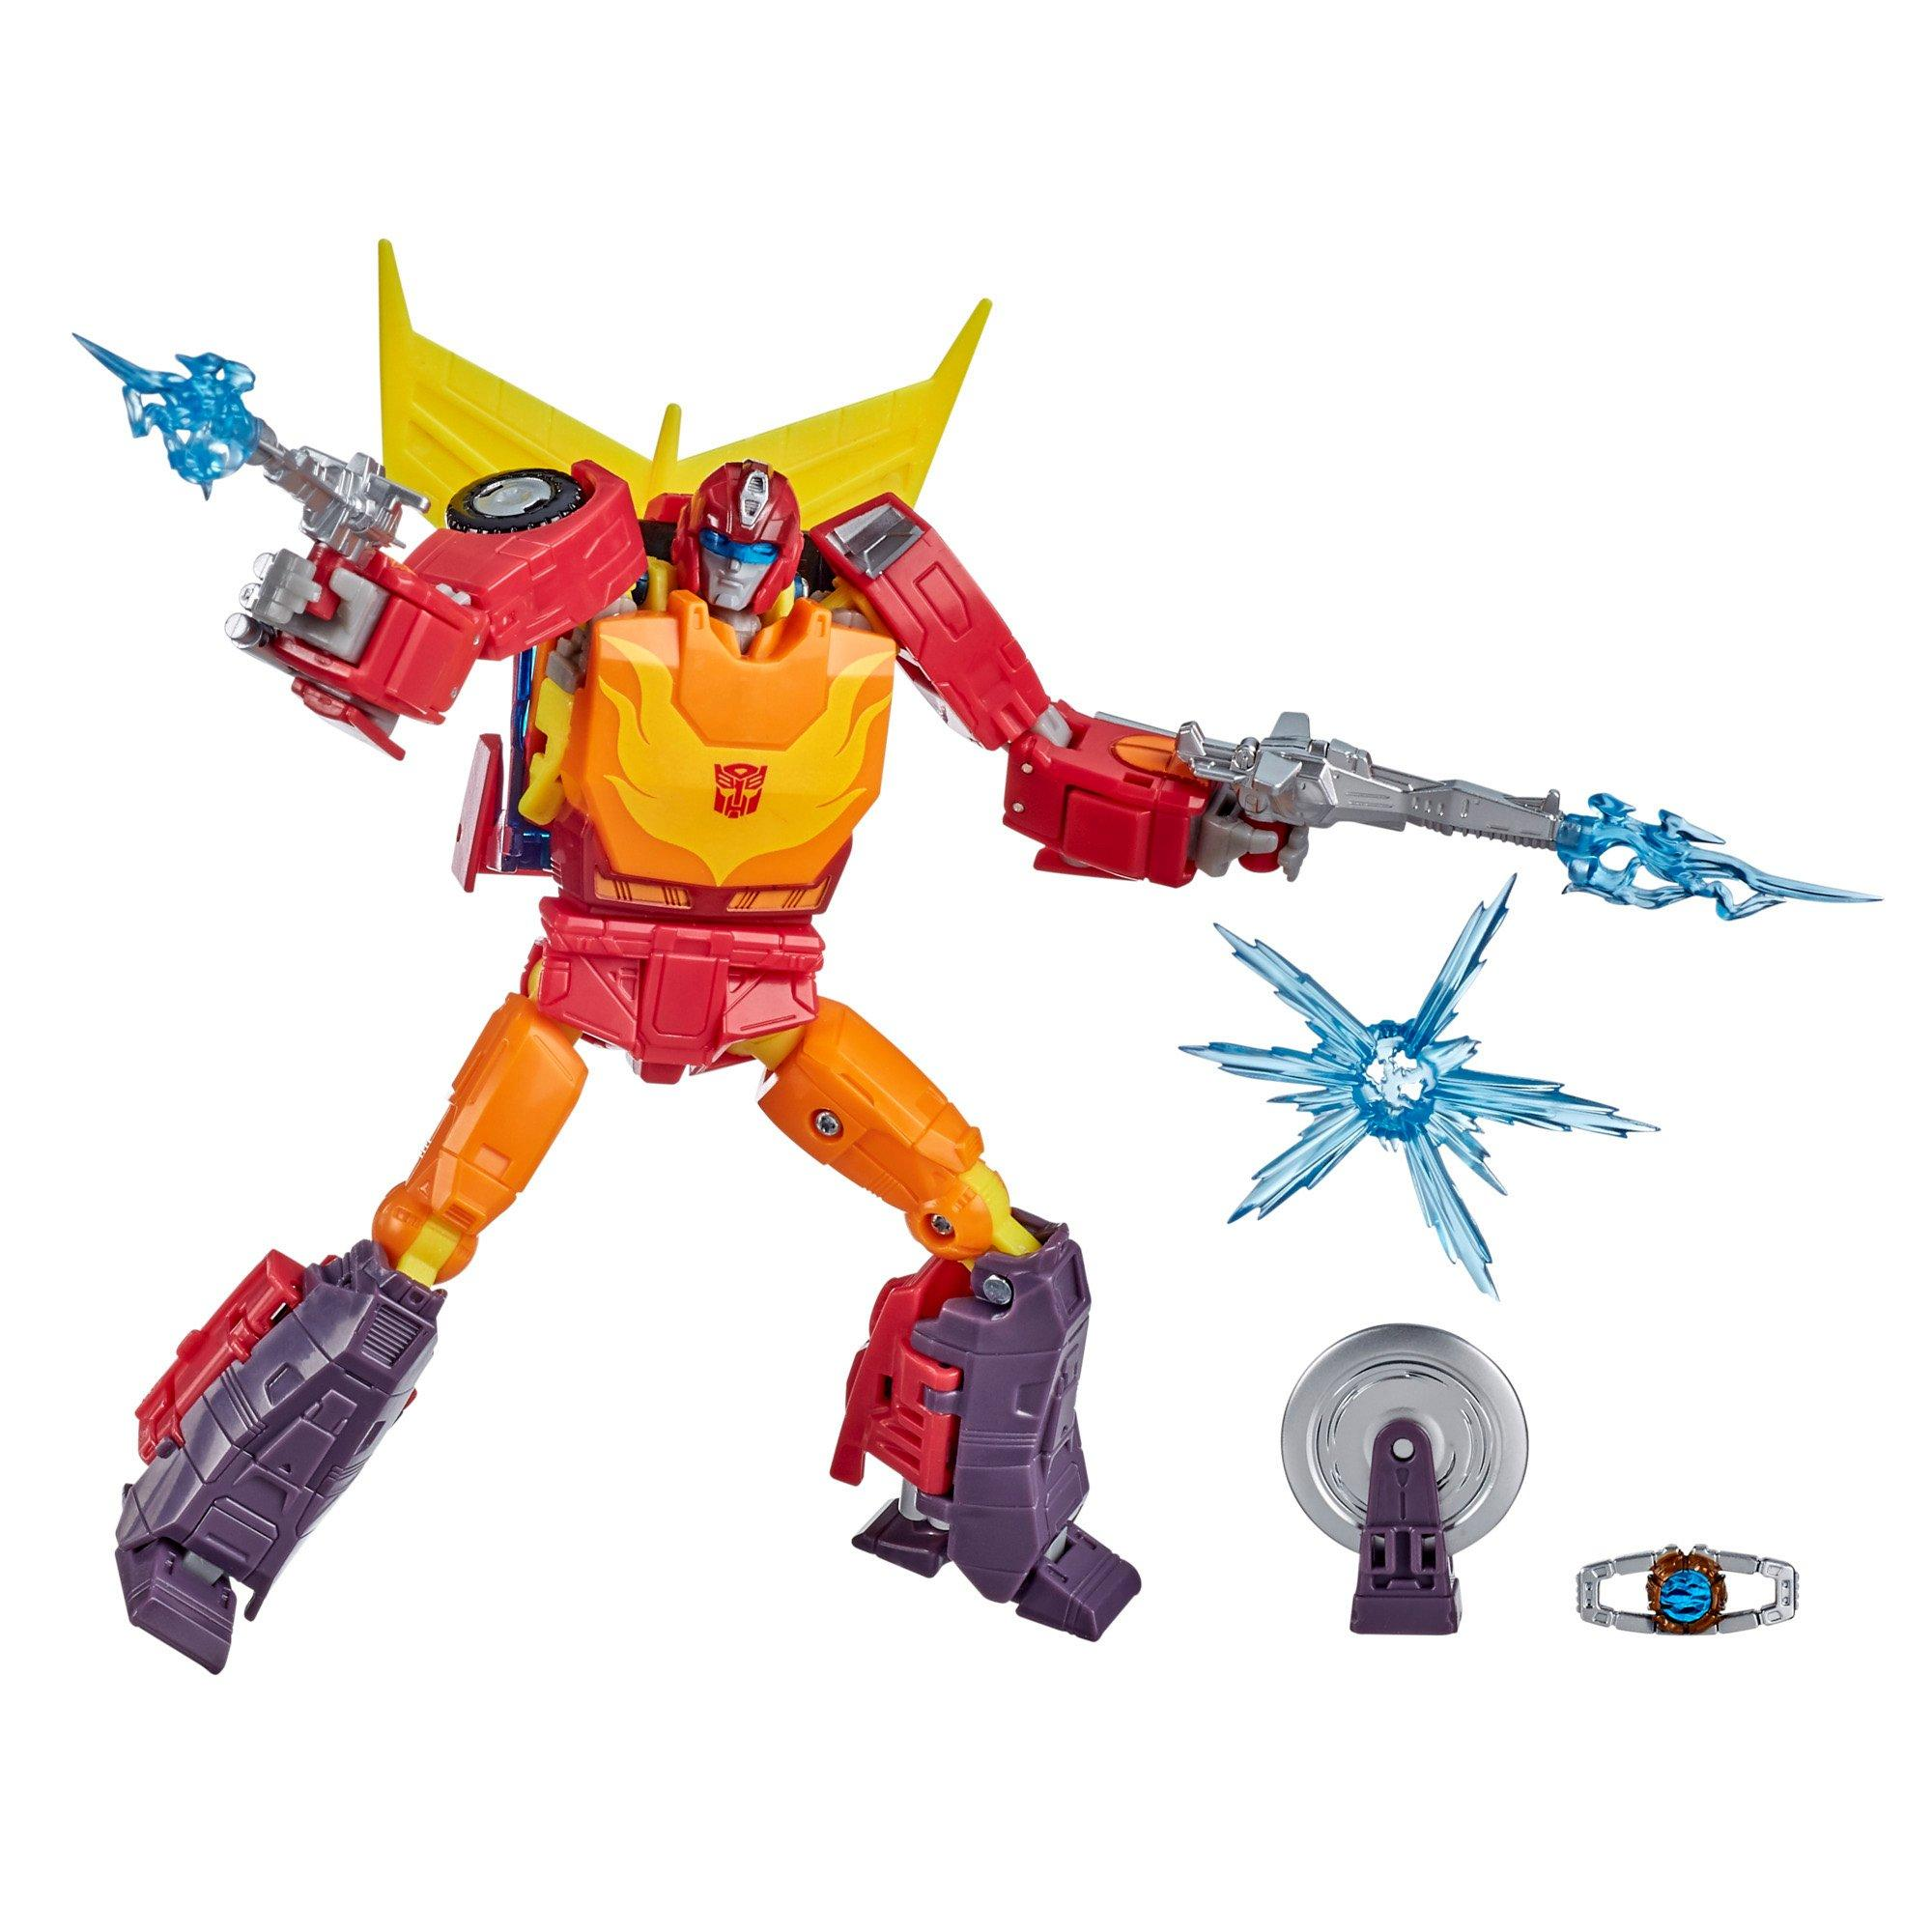 Transformers The Movie 1986 Hot Rod Studio Series Voyager Class Action Figure Gamestop